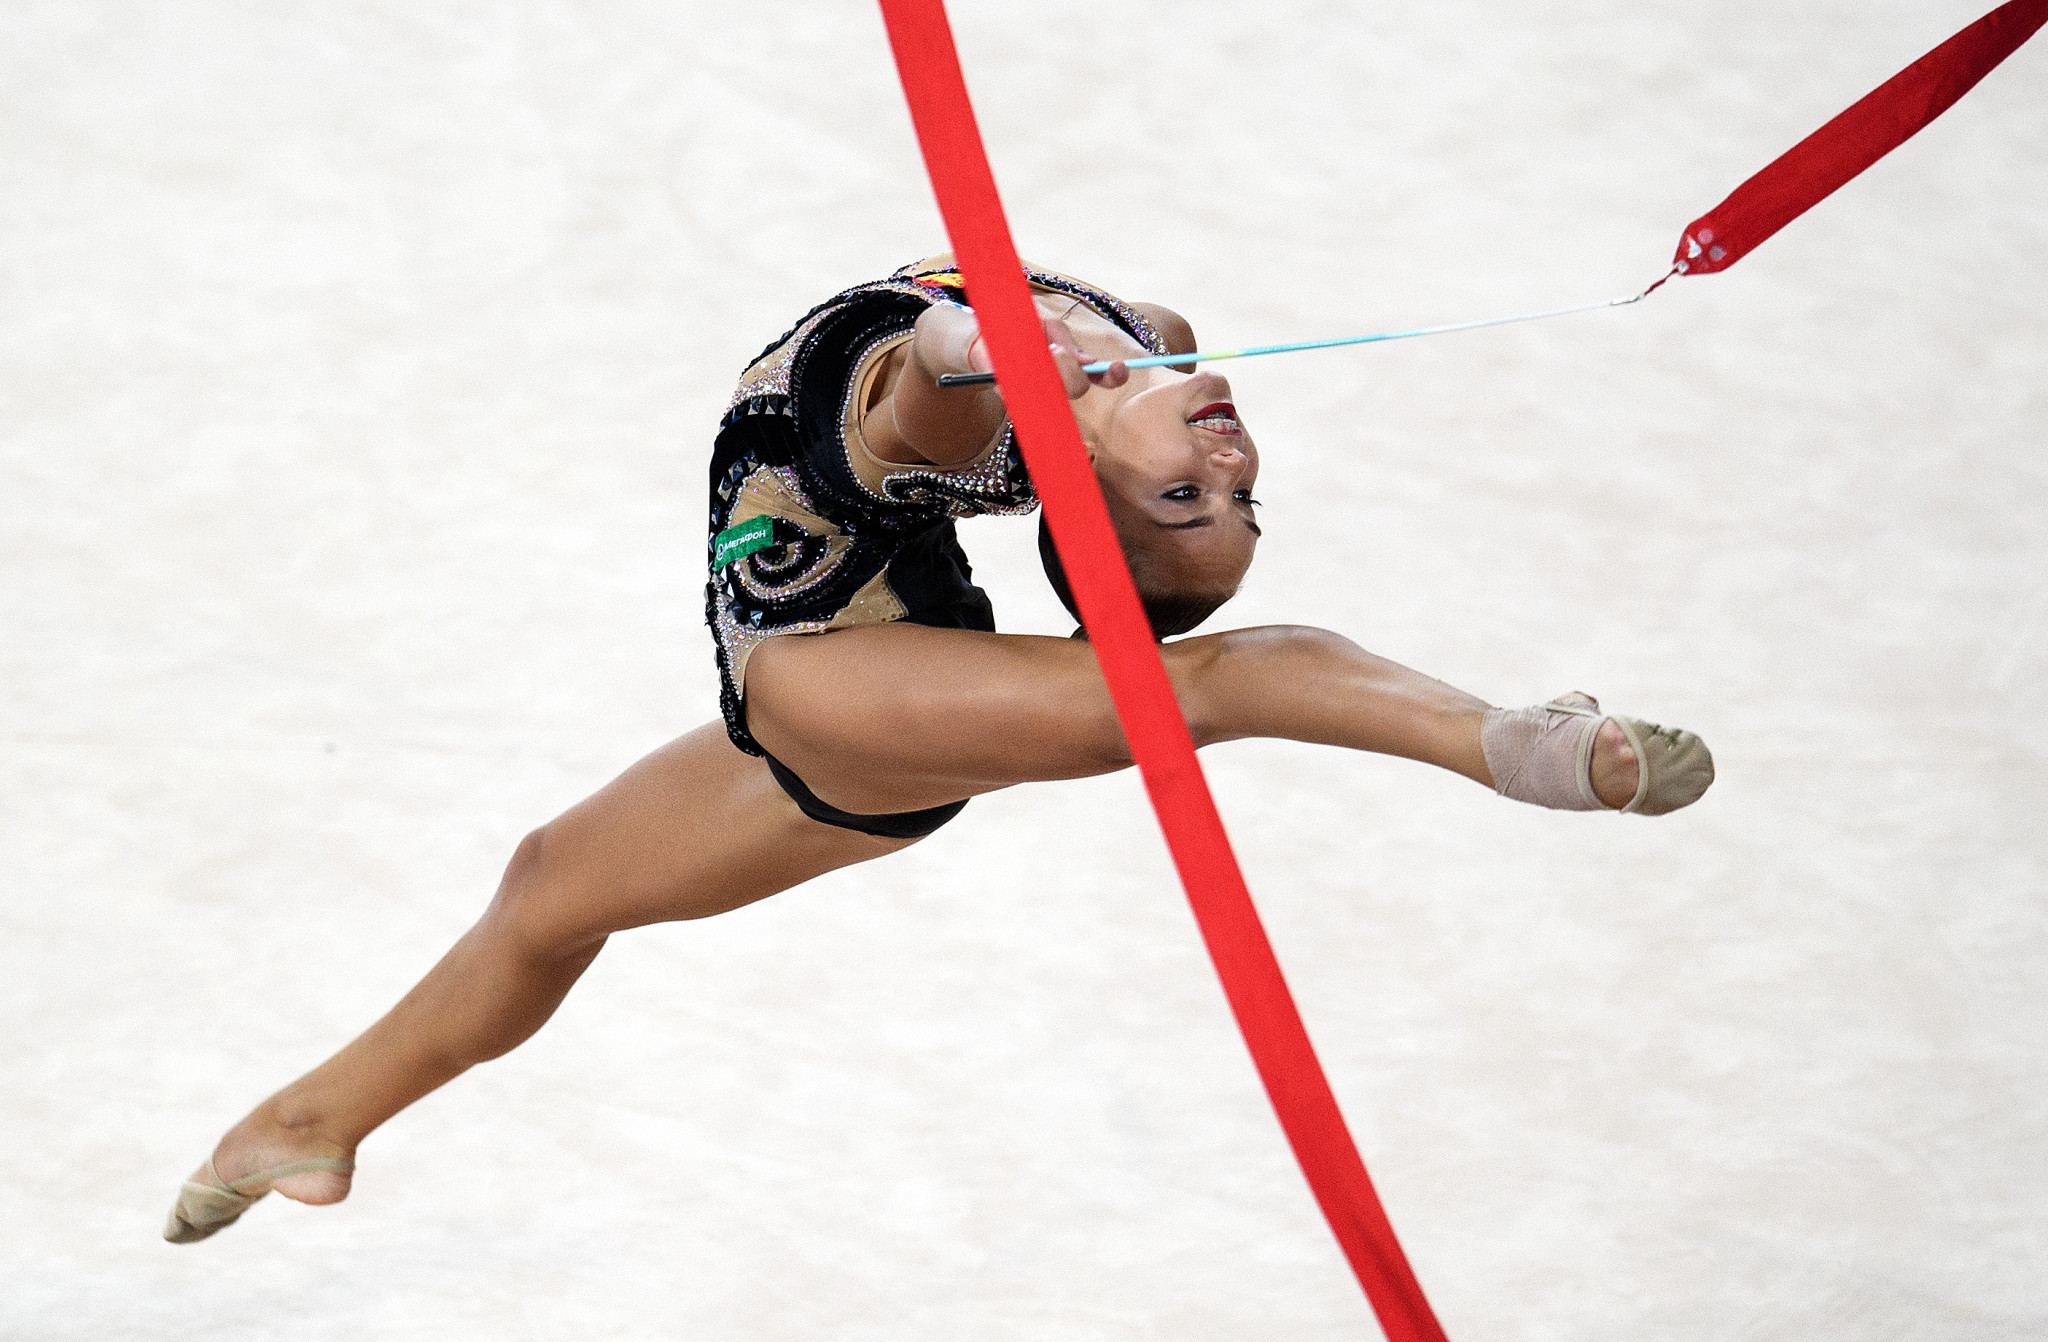 Dina Averina also ended with two individual gold medals as the event in Baku concluded ©Getty Images